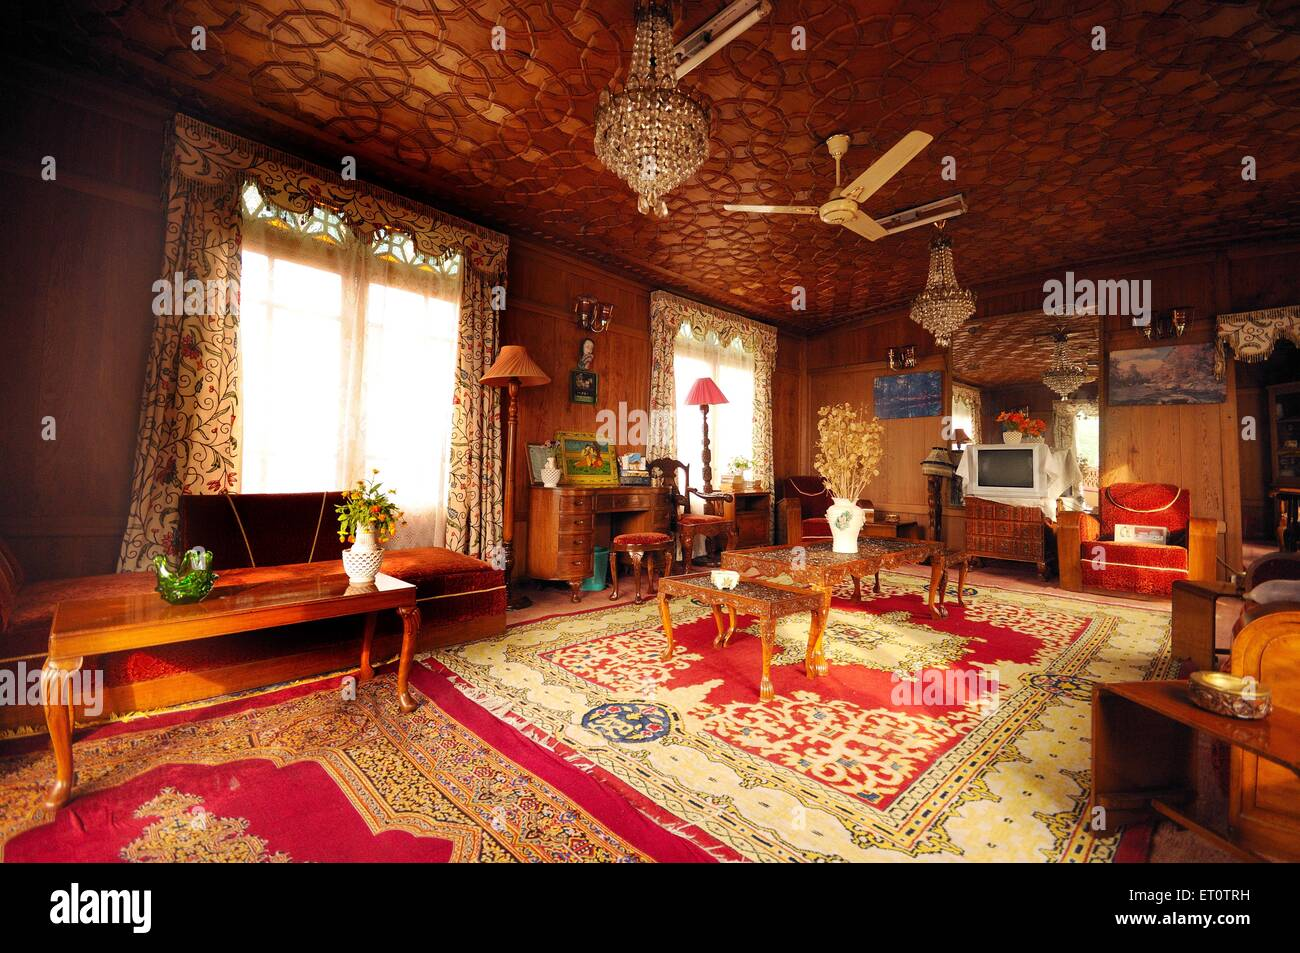 Interior of houseboat ; Srinagar ; Jammu and Kashmir ; India - Stock Image